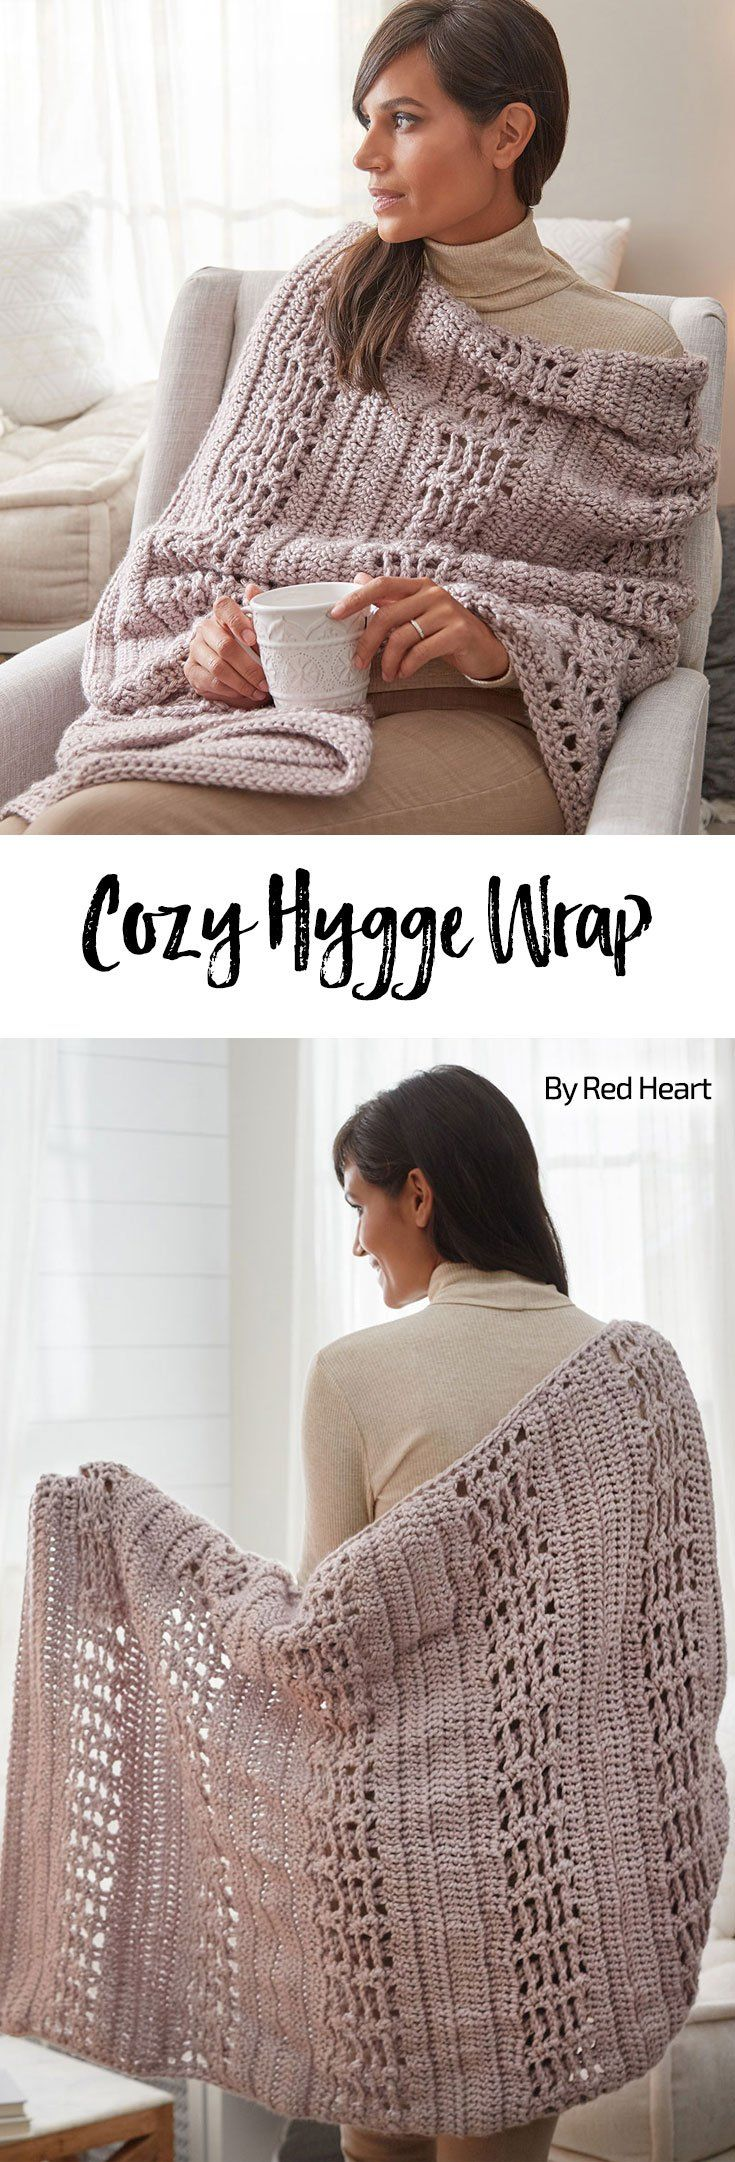 2625 best new new free patterns images on pinterest crochet cozy hygge wrap free crochet pattern in soft essentials bankloansurffo Images